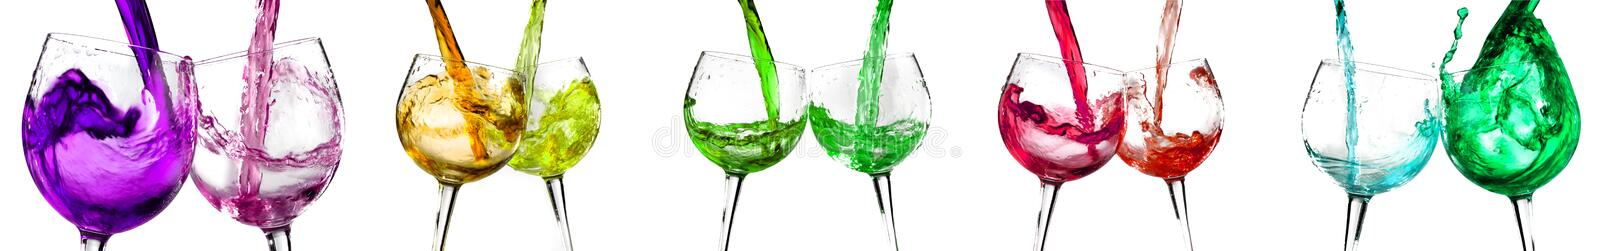 Several glasses of wine royalty free stock photography